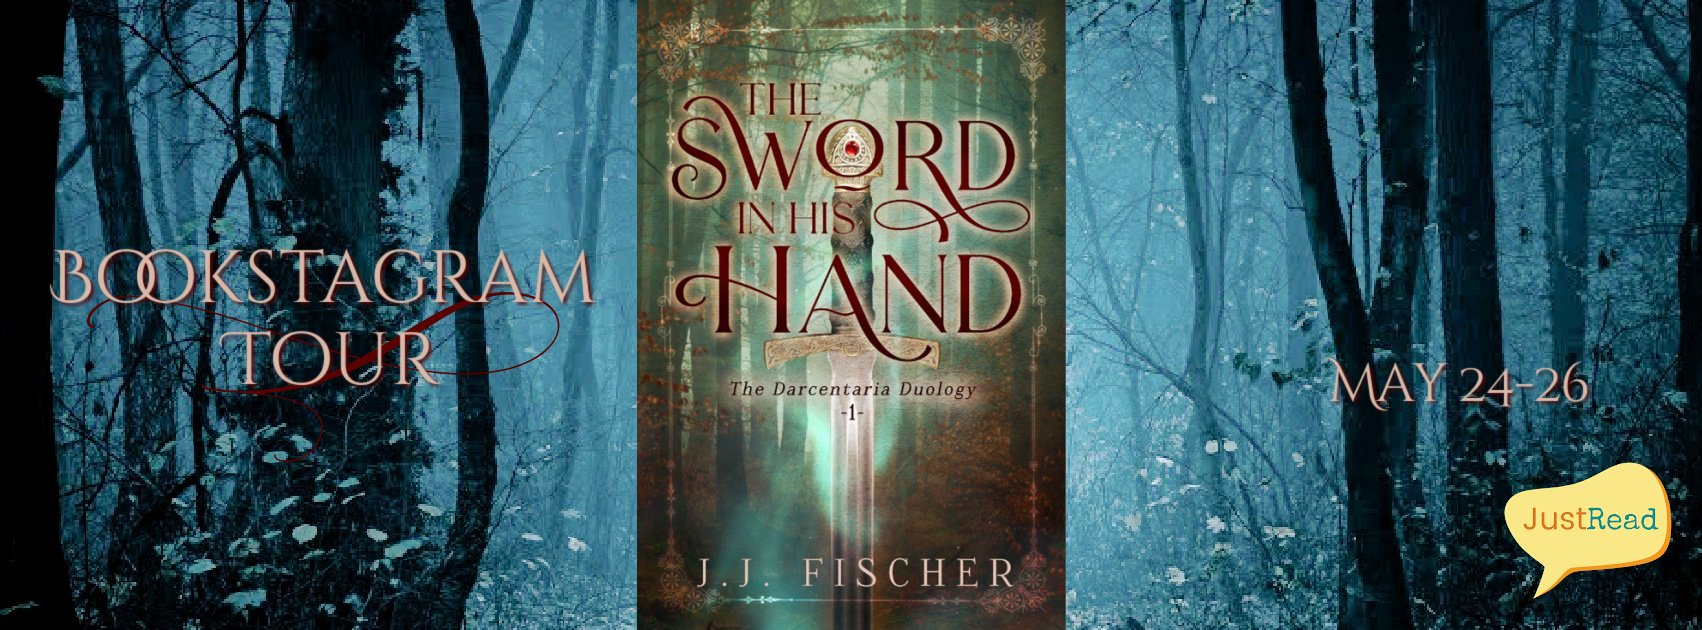 The Sword in His Hand JustRead Bookstagram Tour